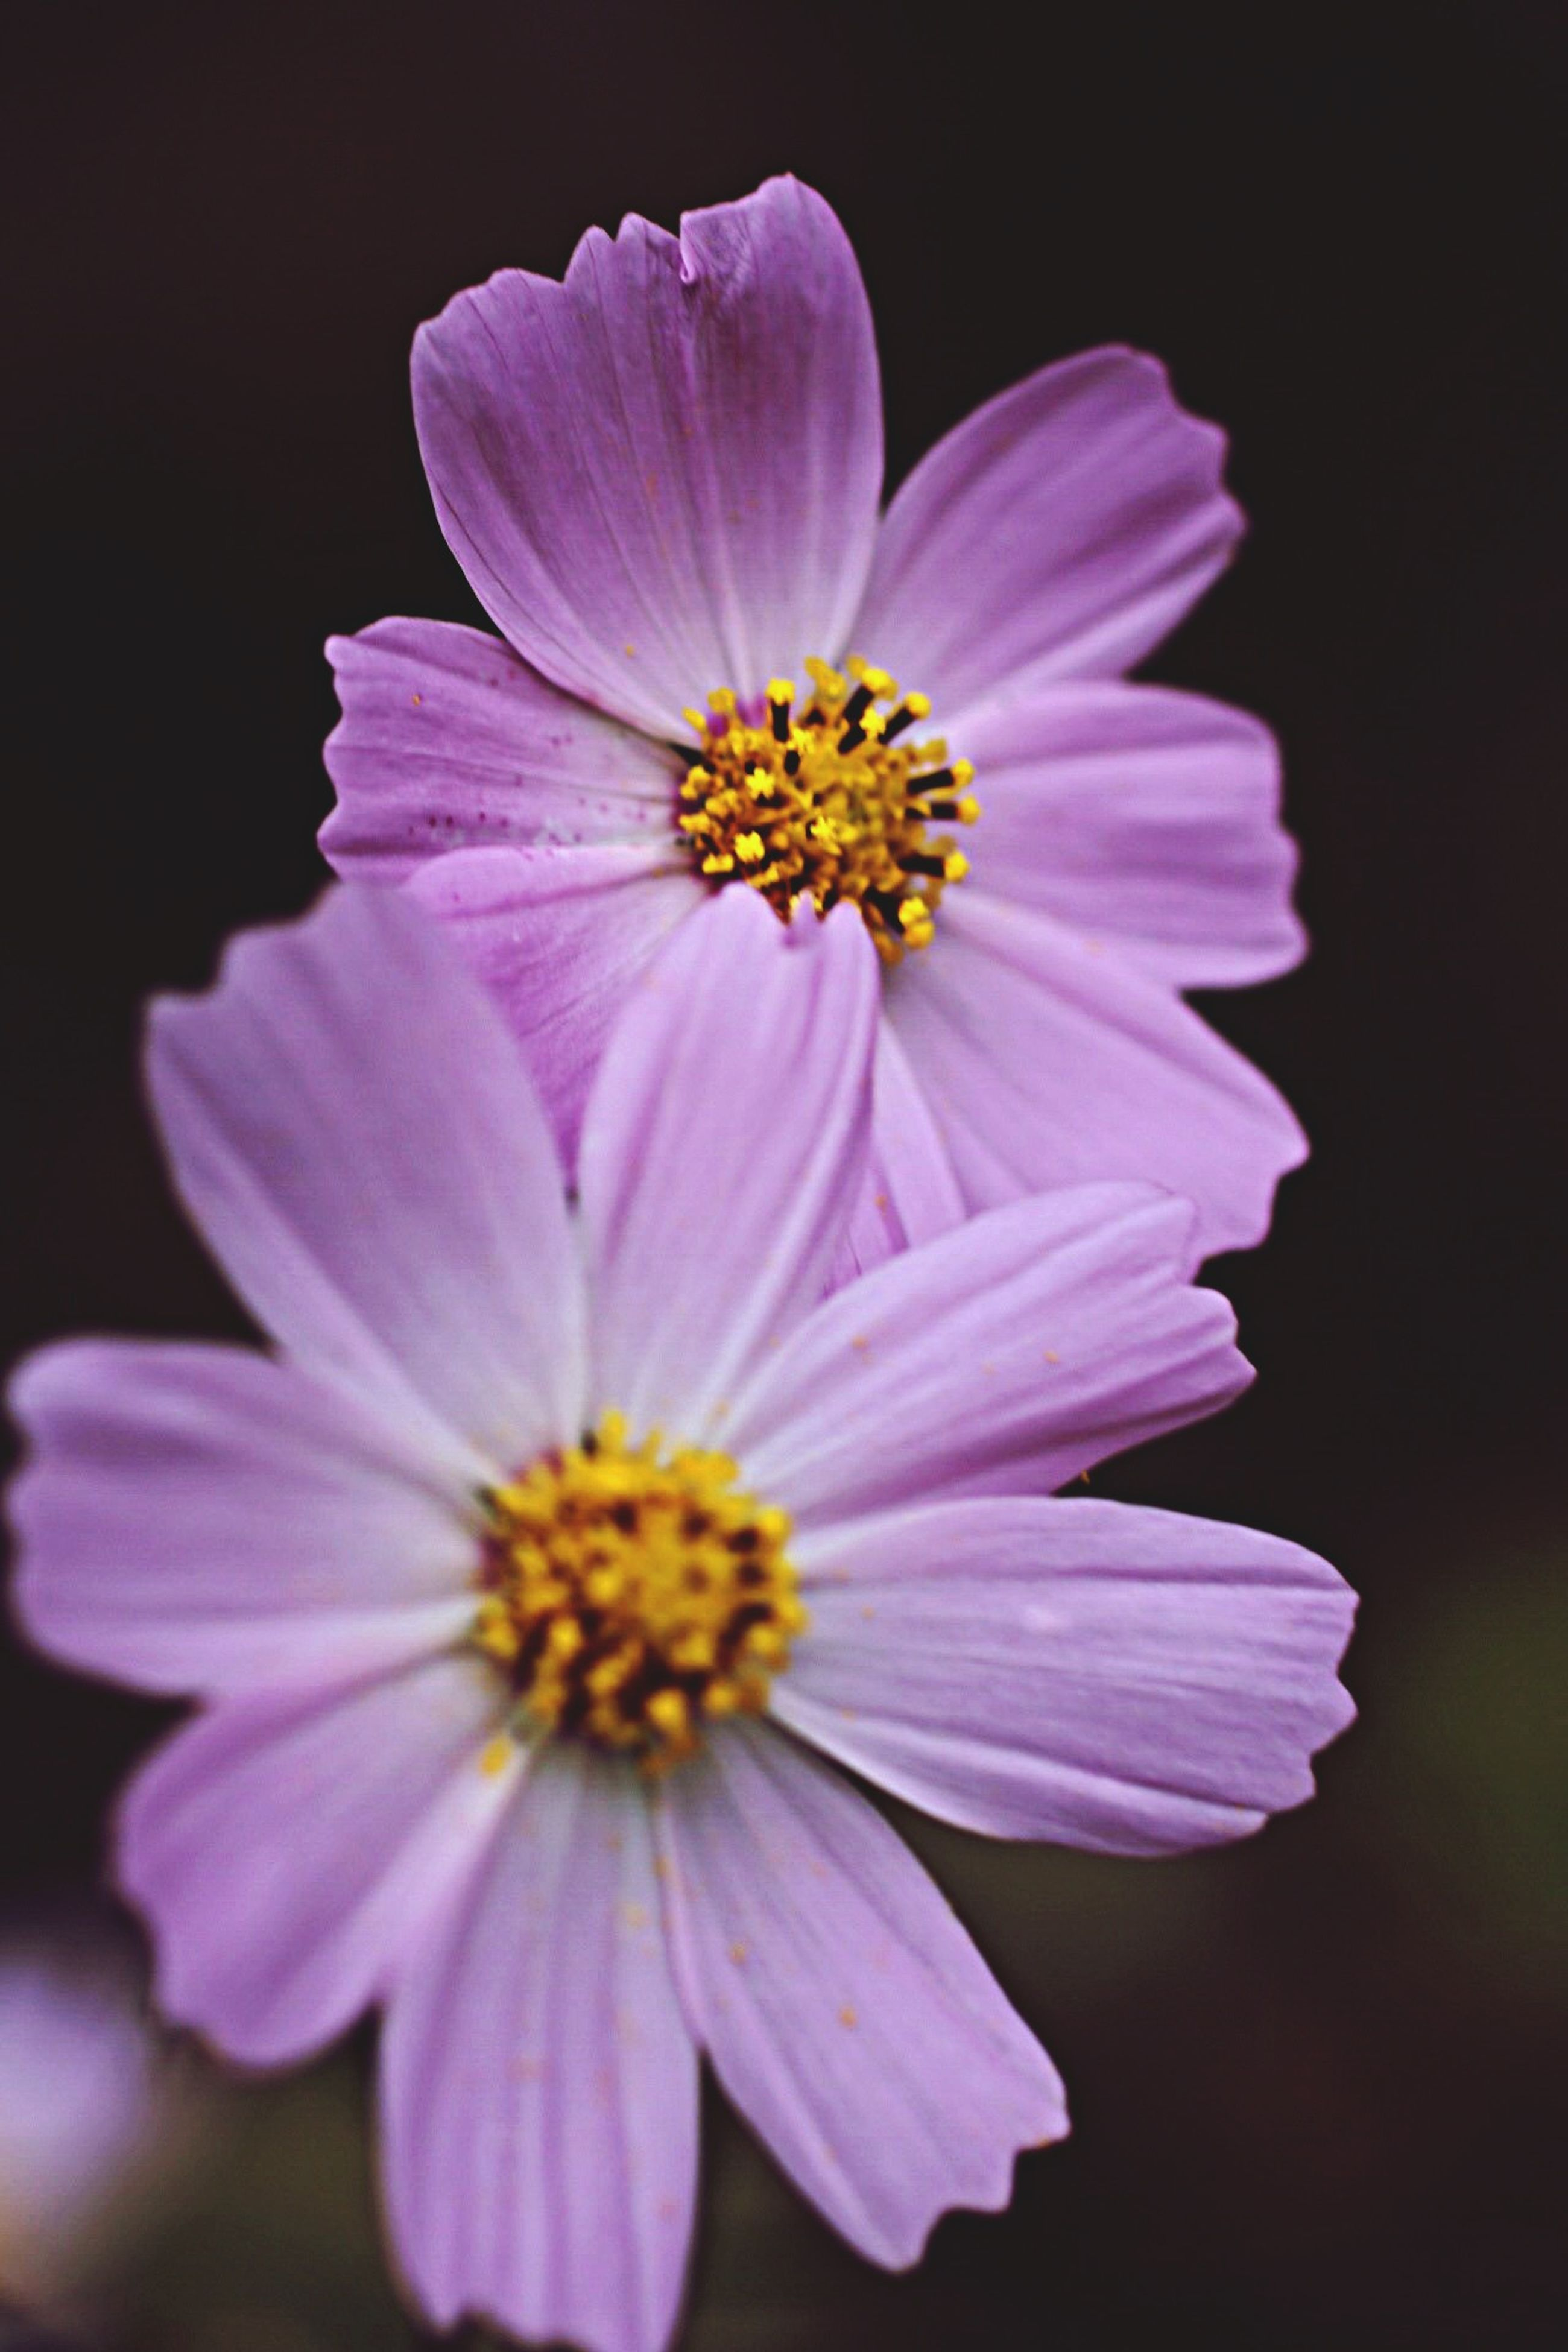 flower, petal, freshness, fragility, flower head, beauty in nature, close-up, pollen, growth, nature, purple, blooming, black background, stamen, yellow, in bloom, studio shot, blossom, single flower, pink color